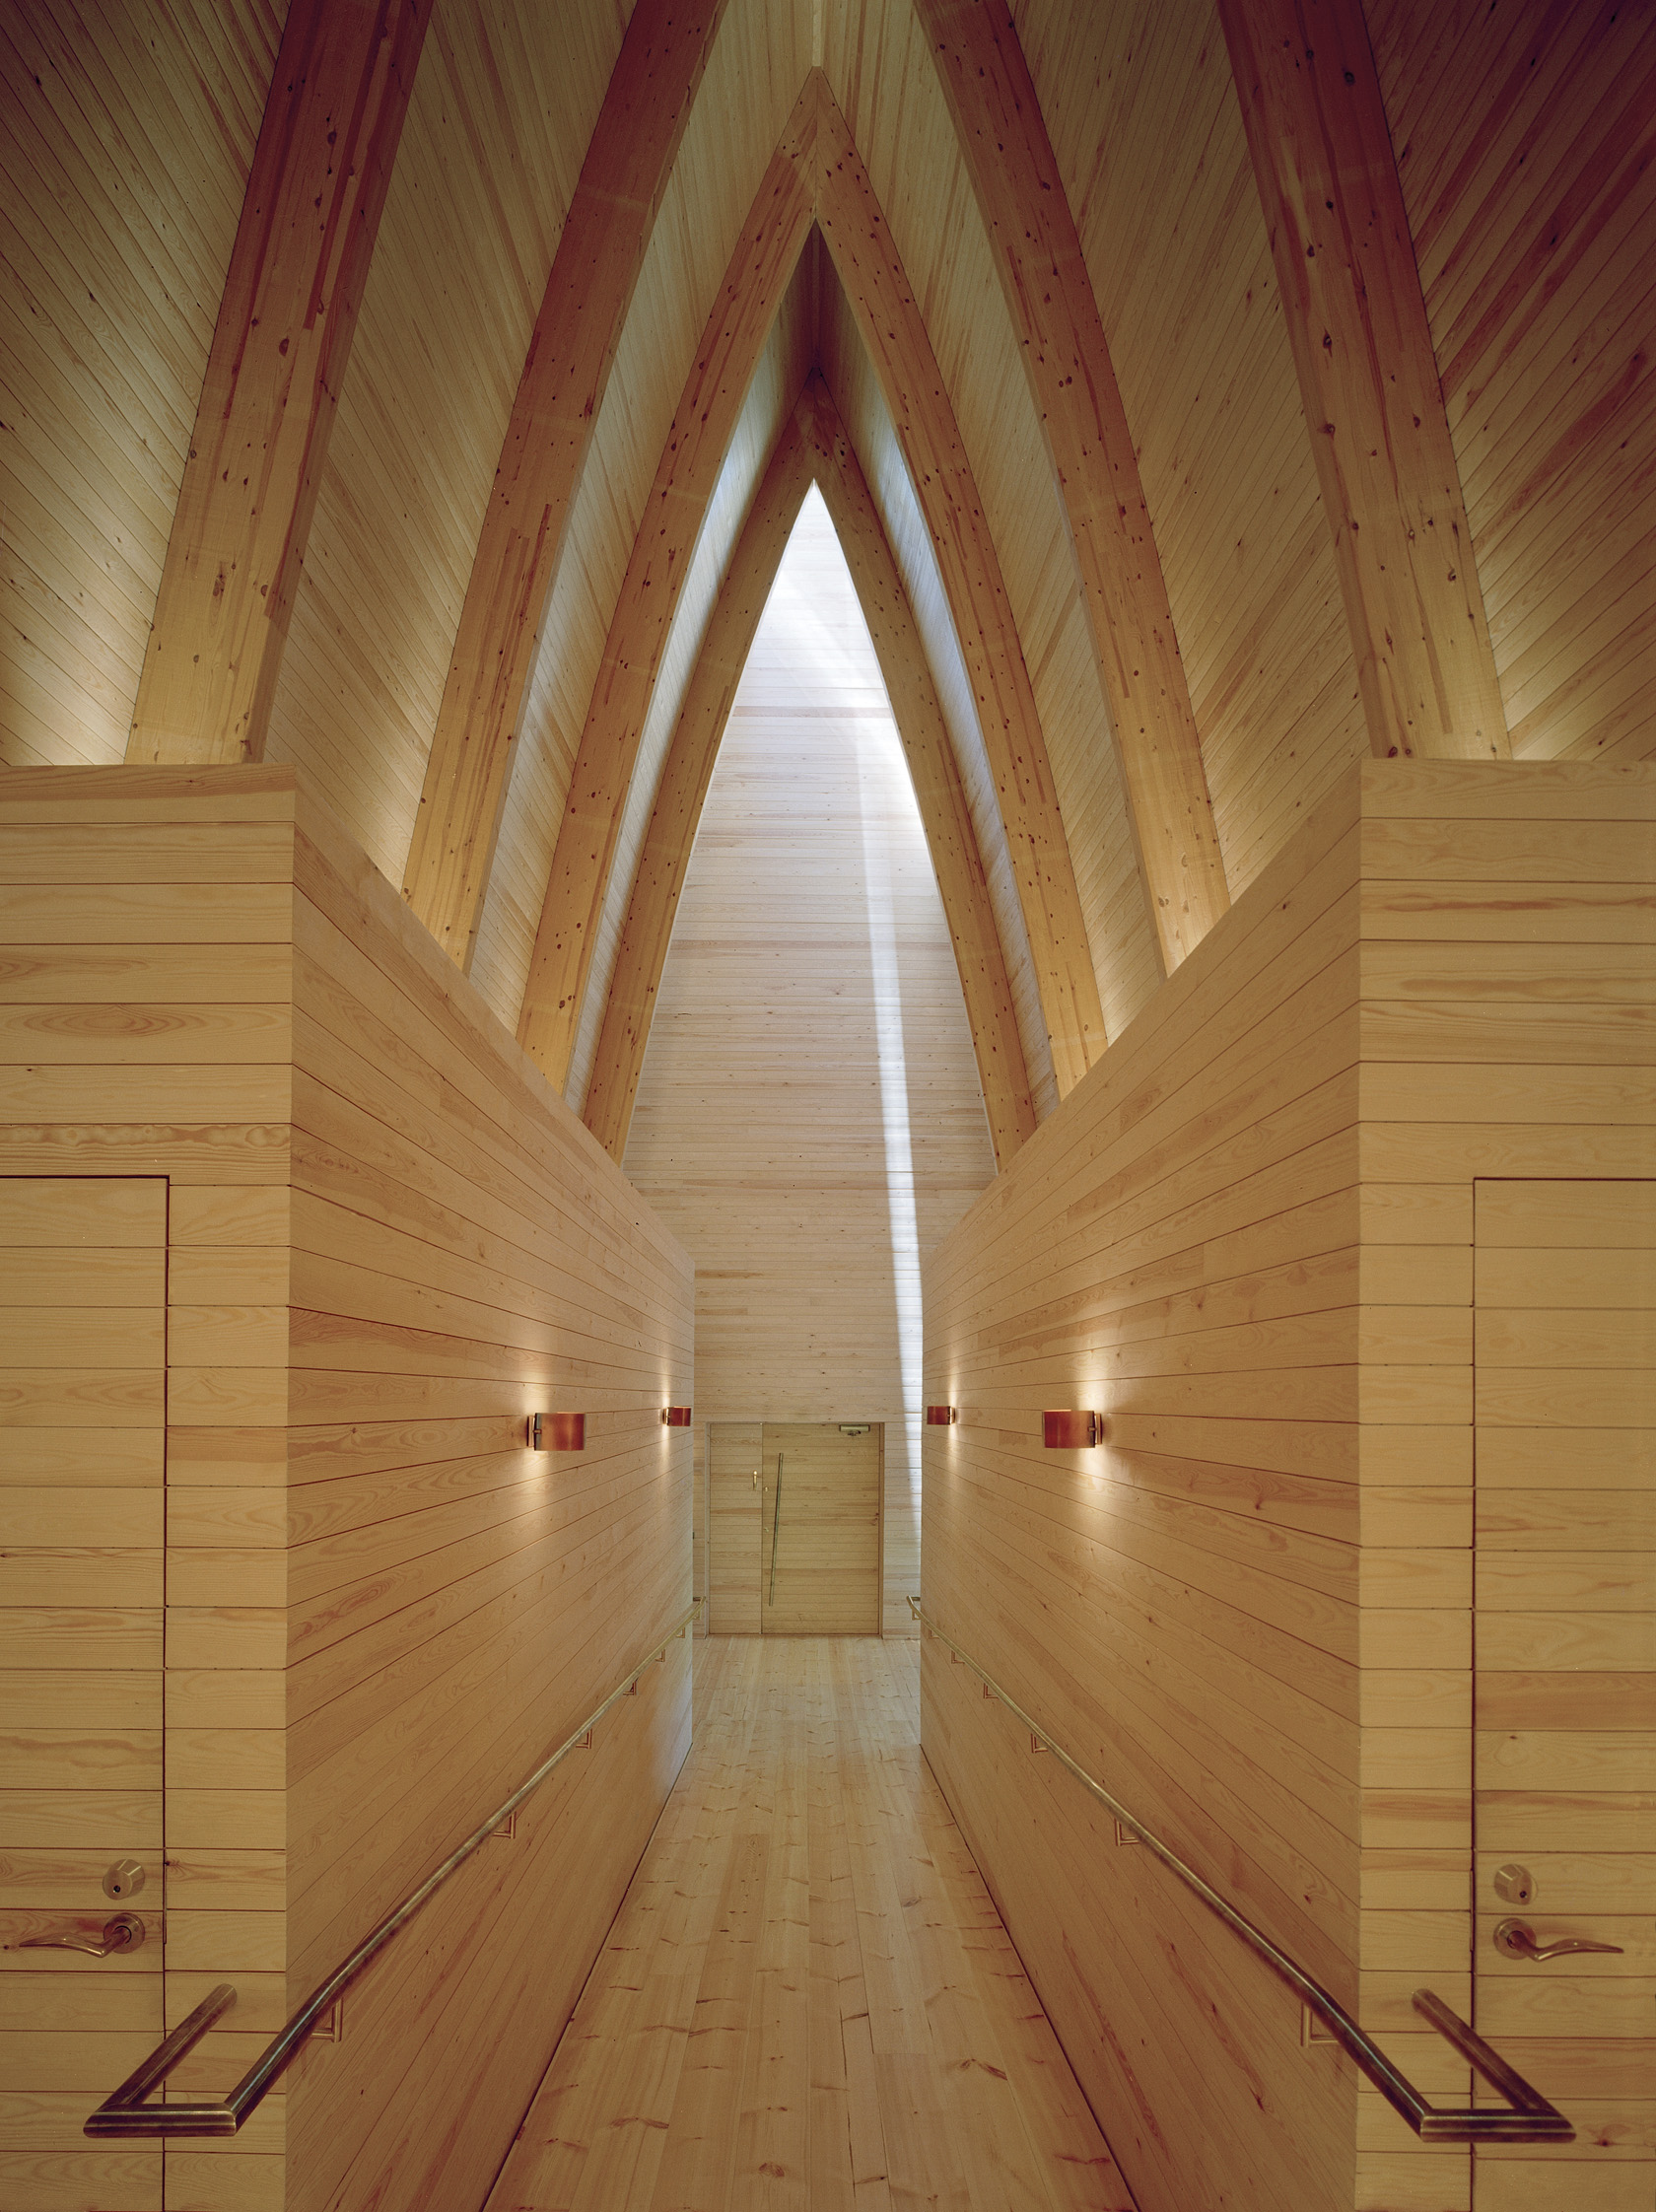 Sanaksenaho Architects: St. Henry's Ecumenical Art Chapel in Turku, Finland (2005). Photo by Jussi Tiainen.